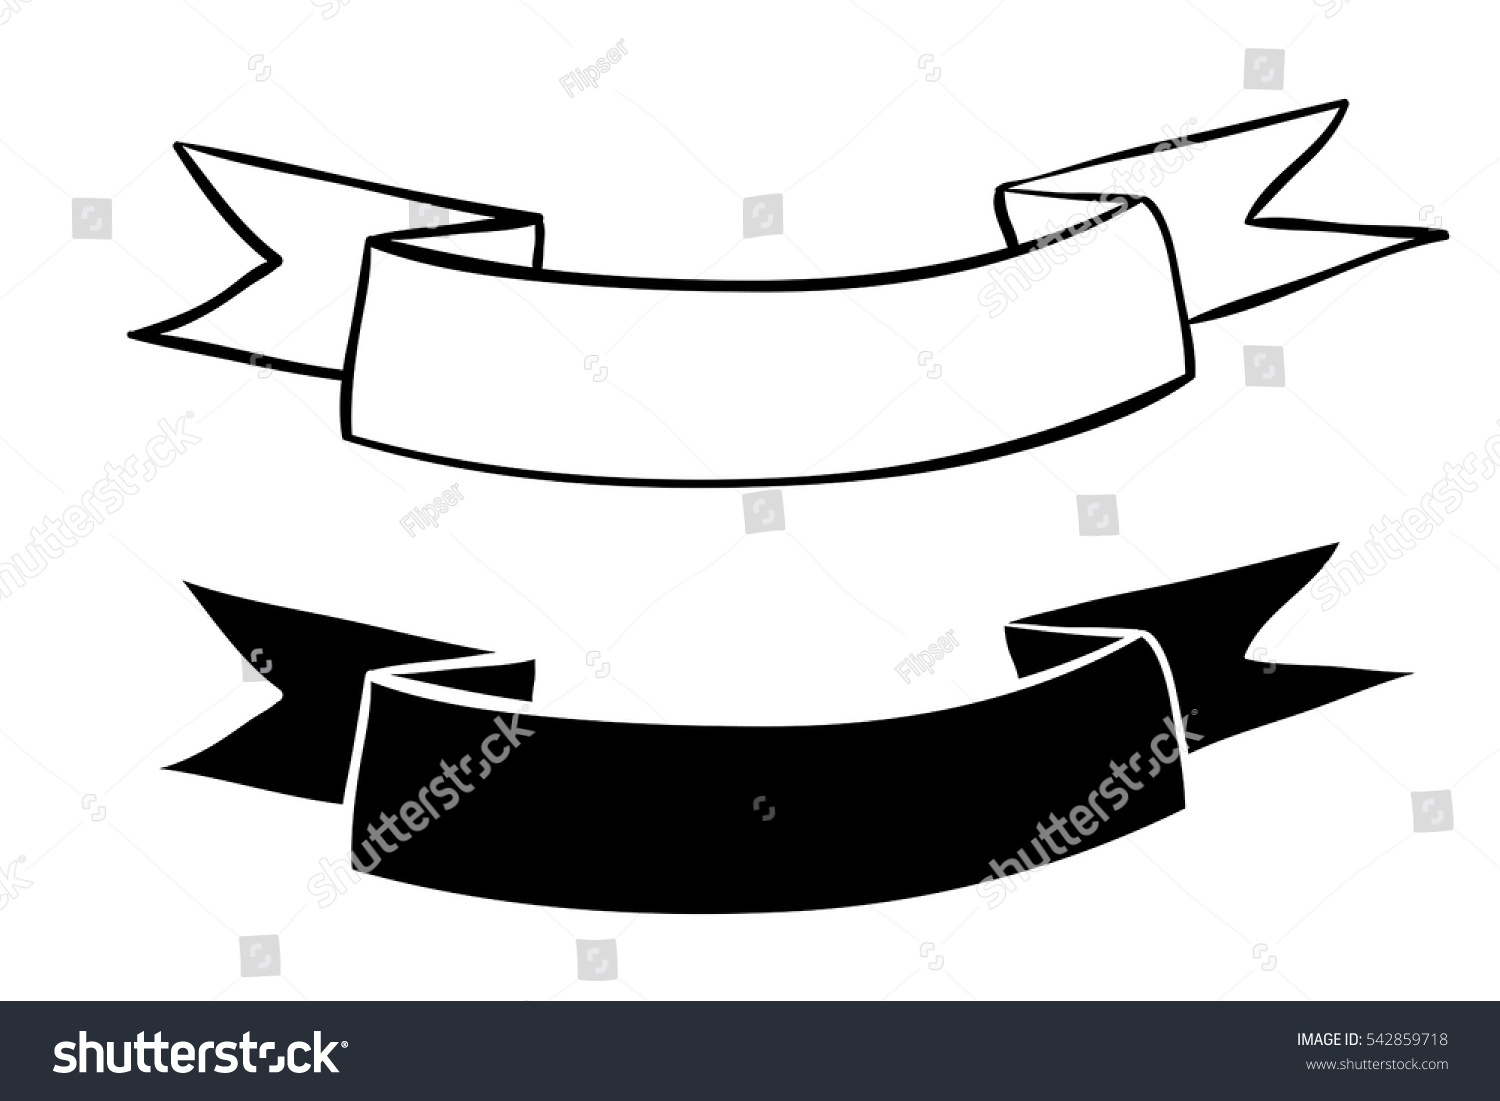 Ribbon Banners Blank White Outline Icons Stock Vector ...